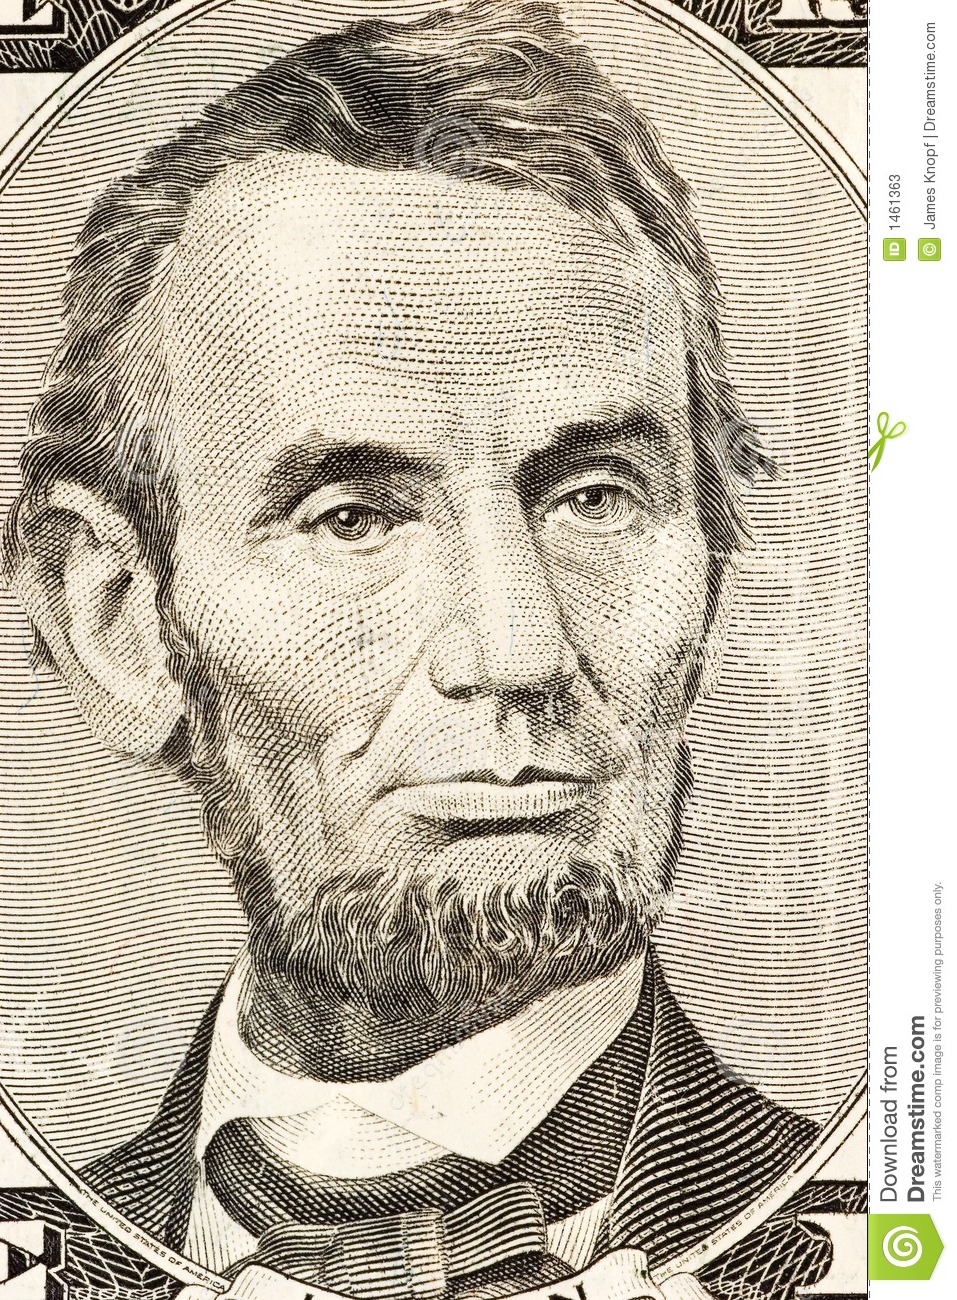 Abraham Lincoln on FIve